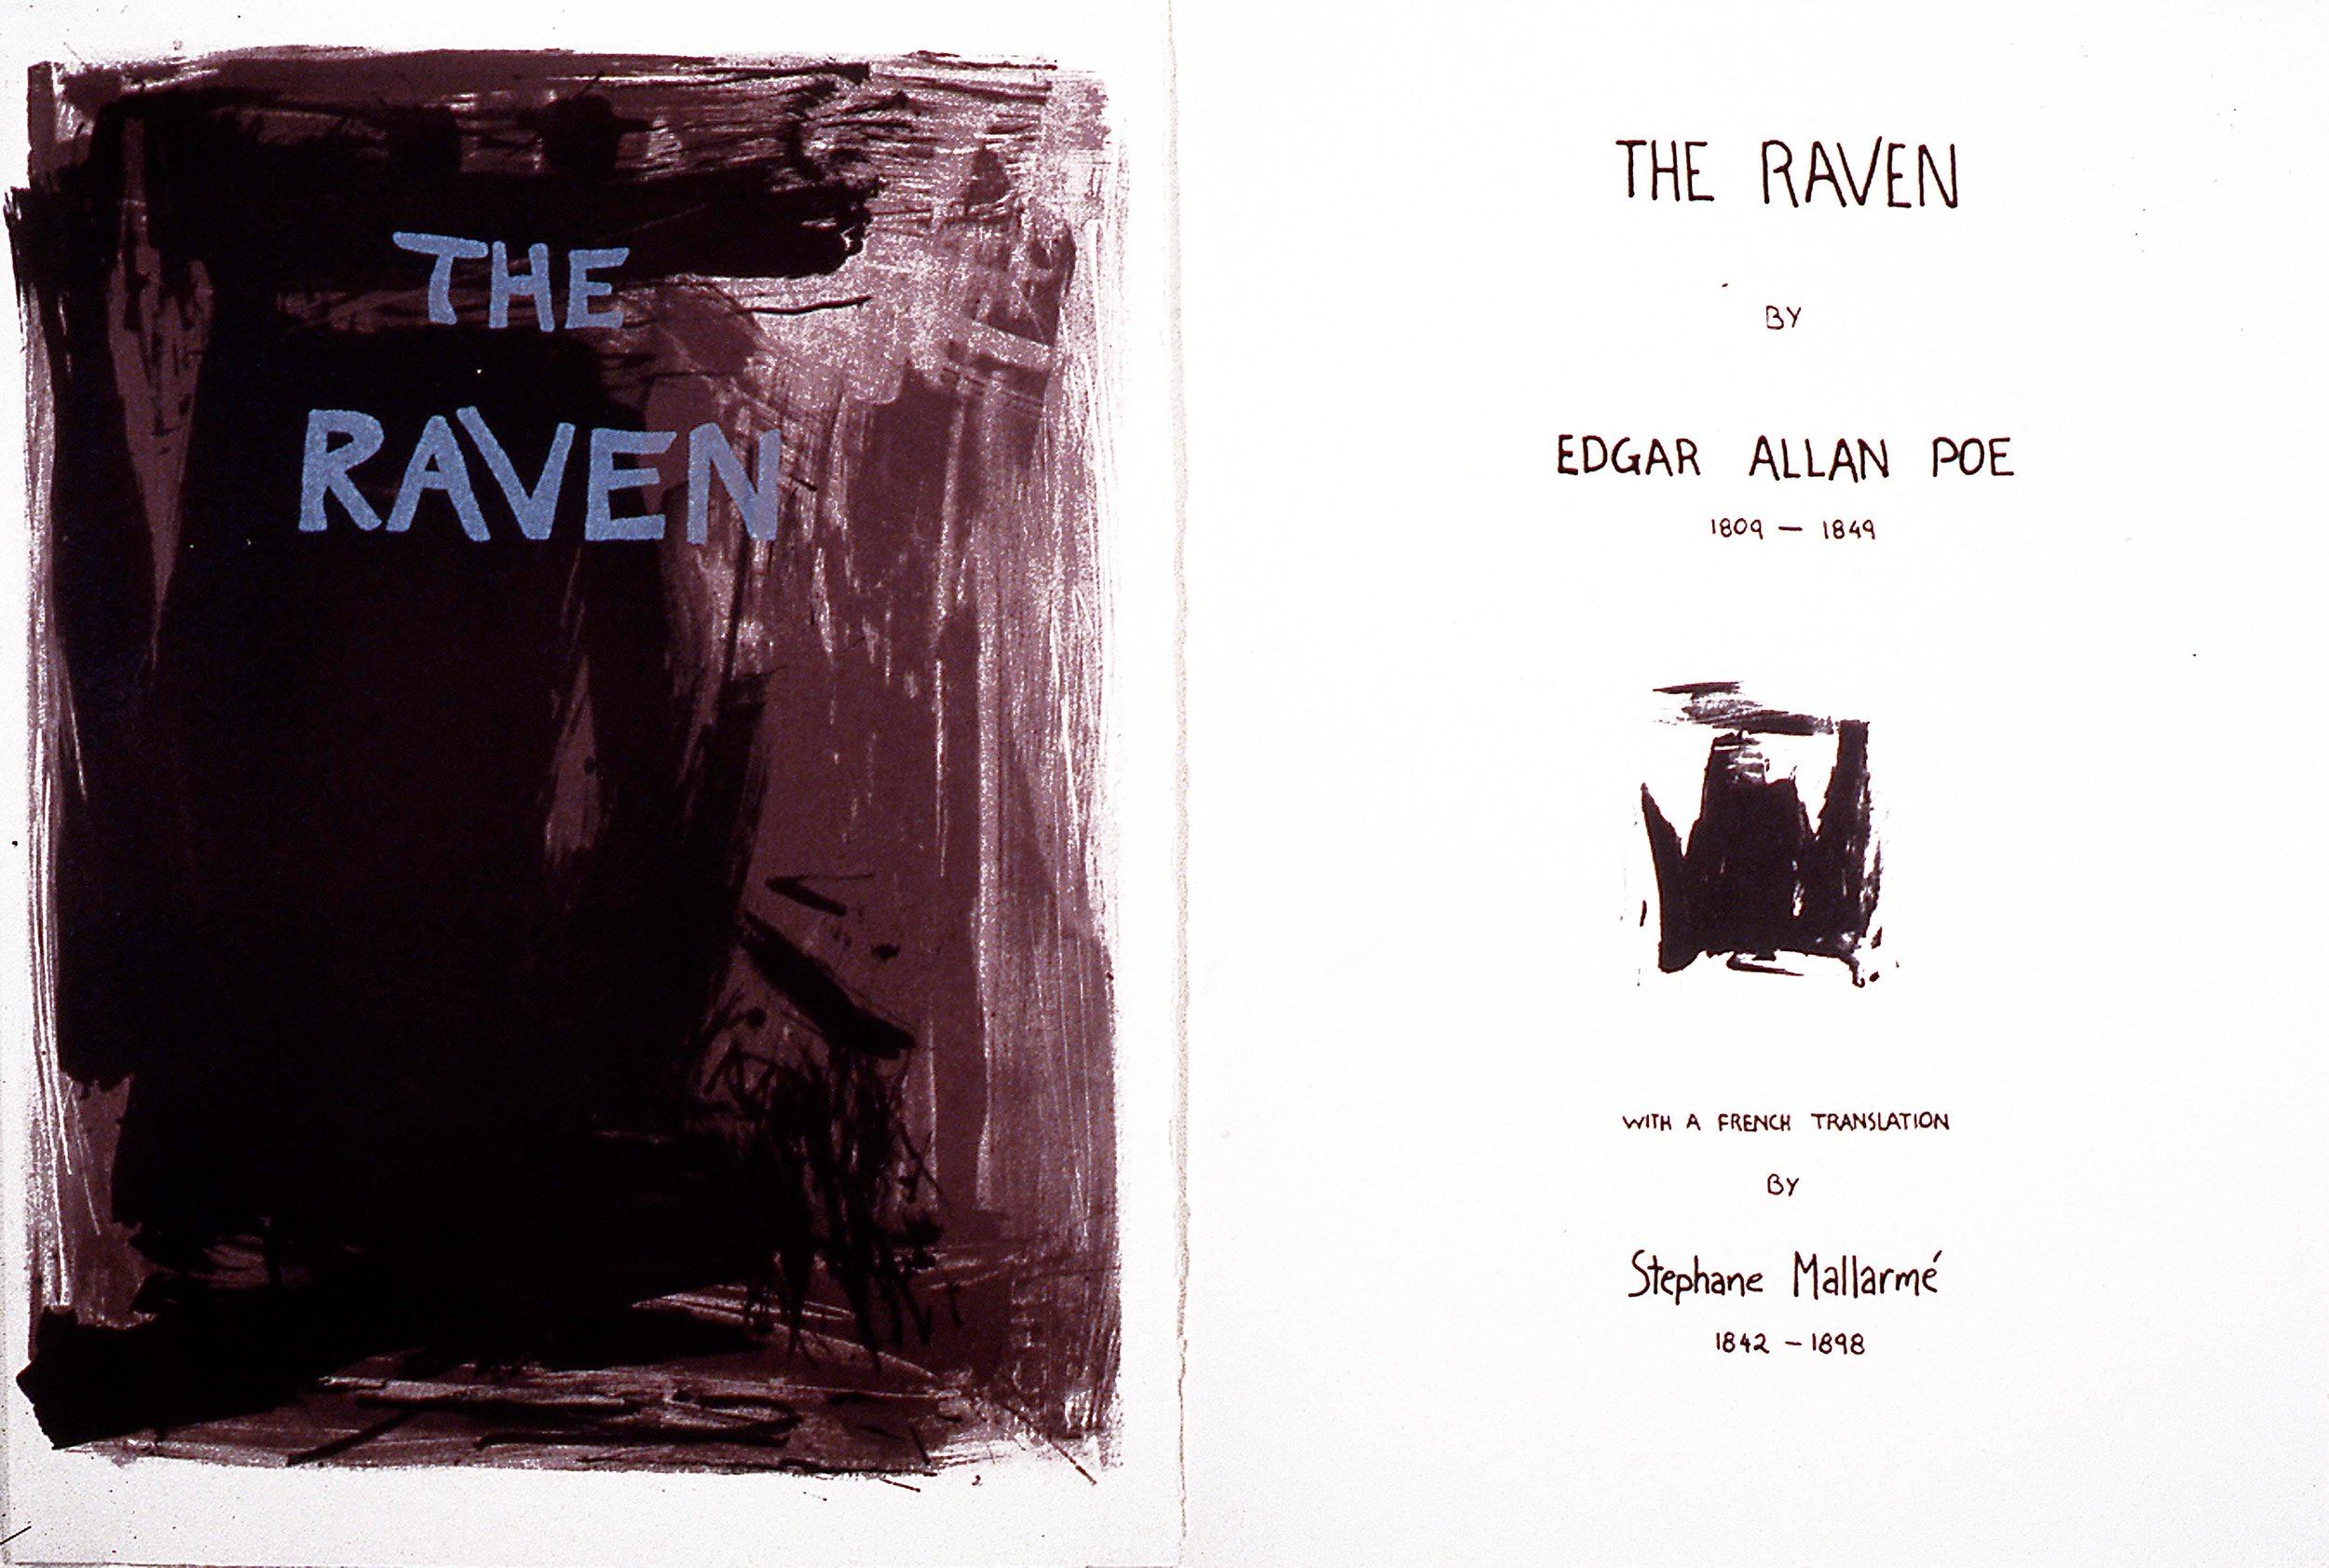 1 the raven cover 1991 Illustrated book 38x56cm copy.jpg